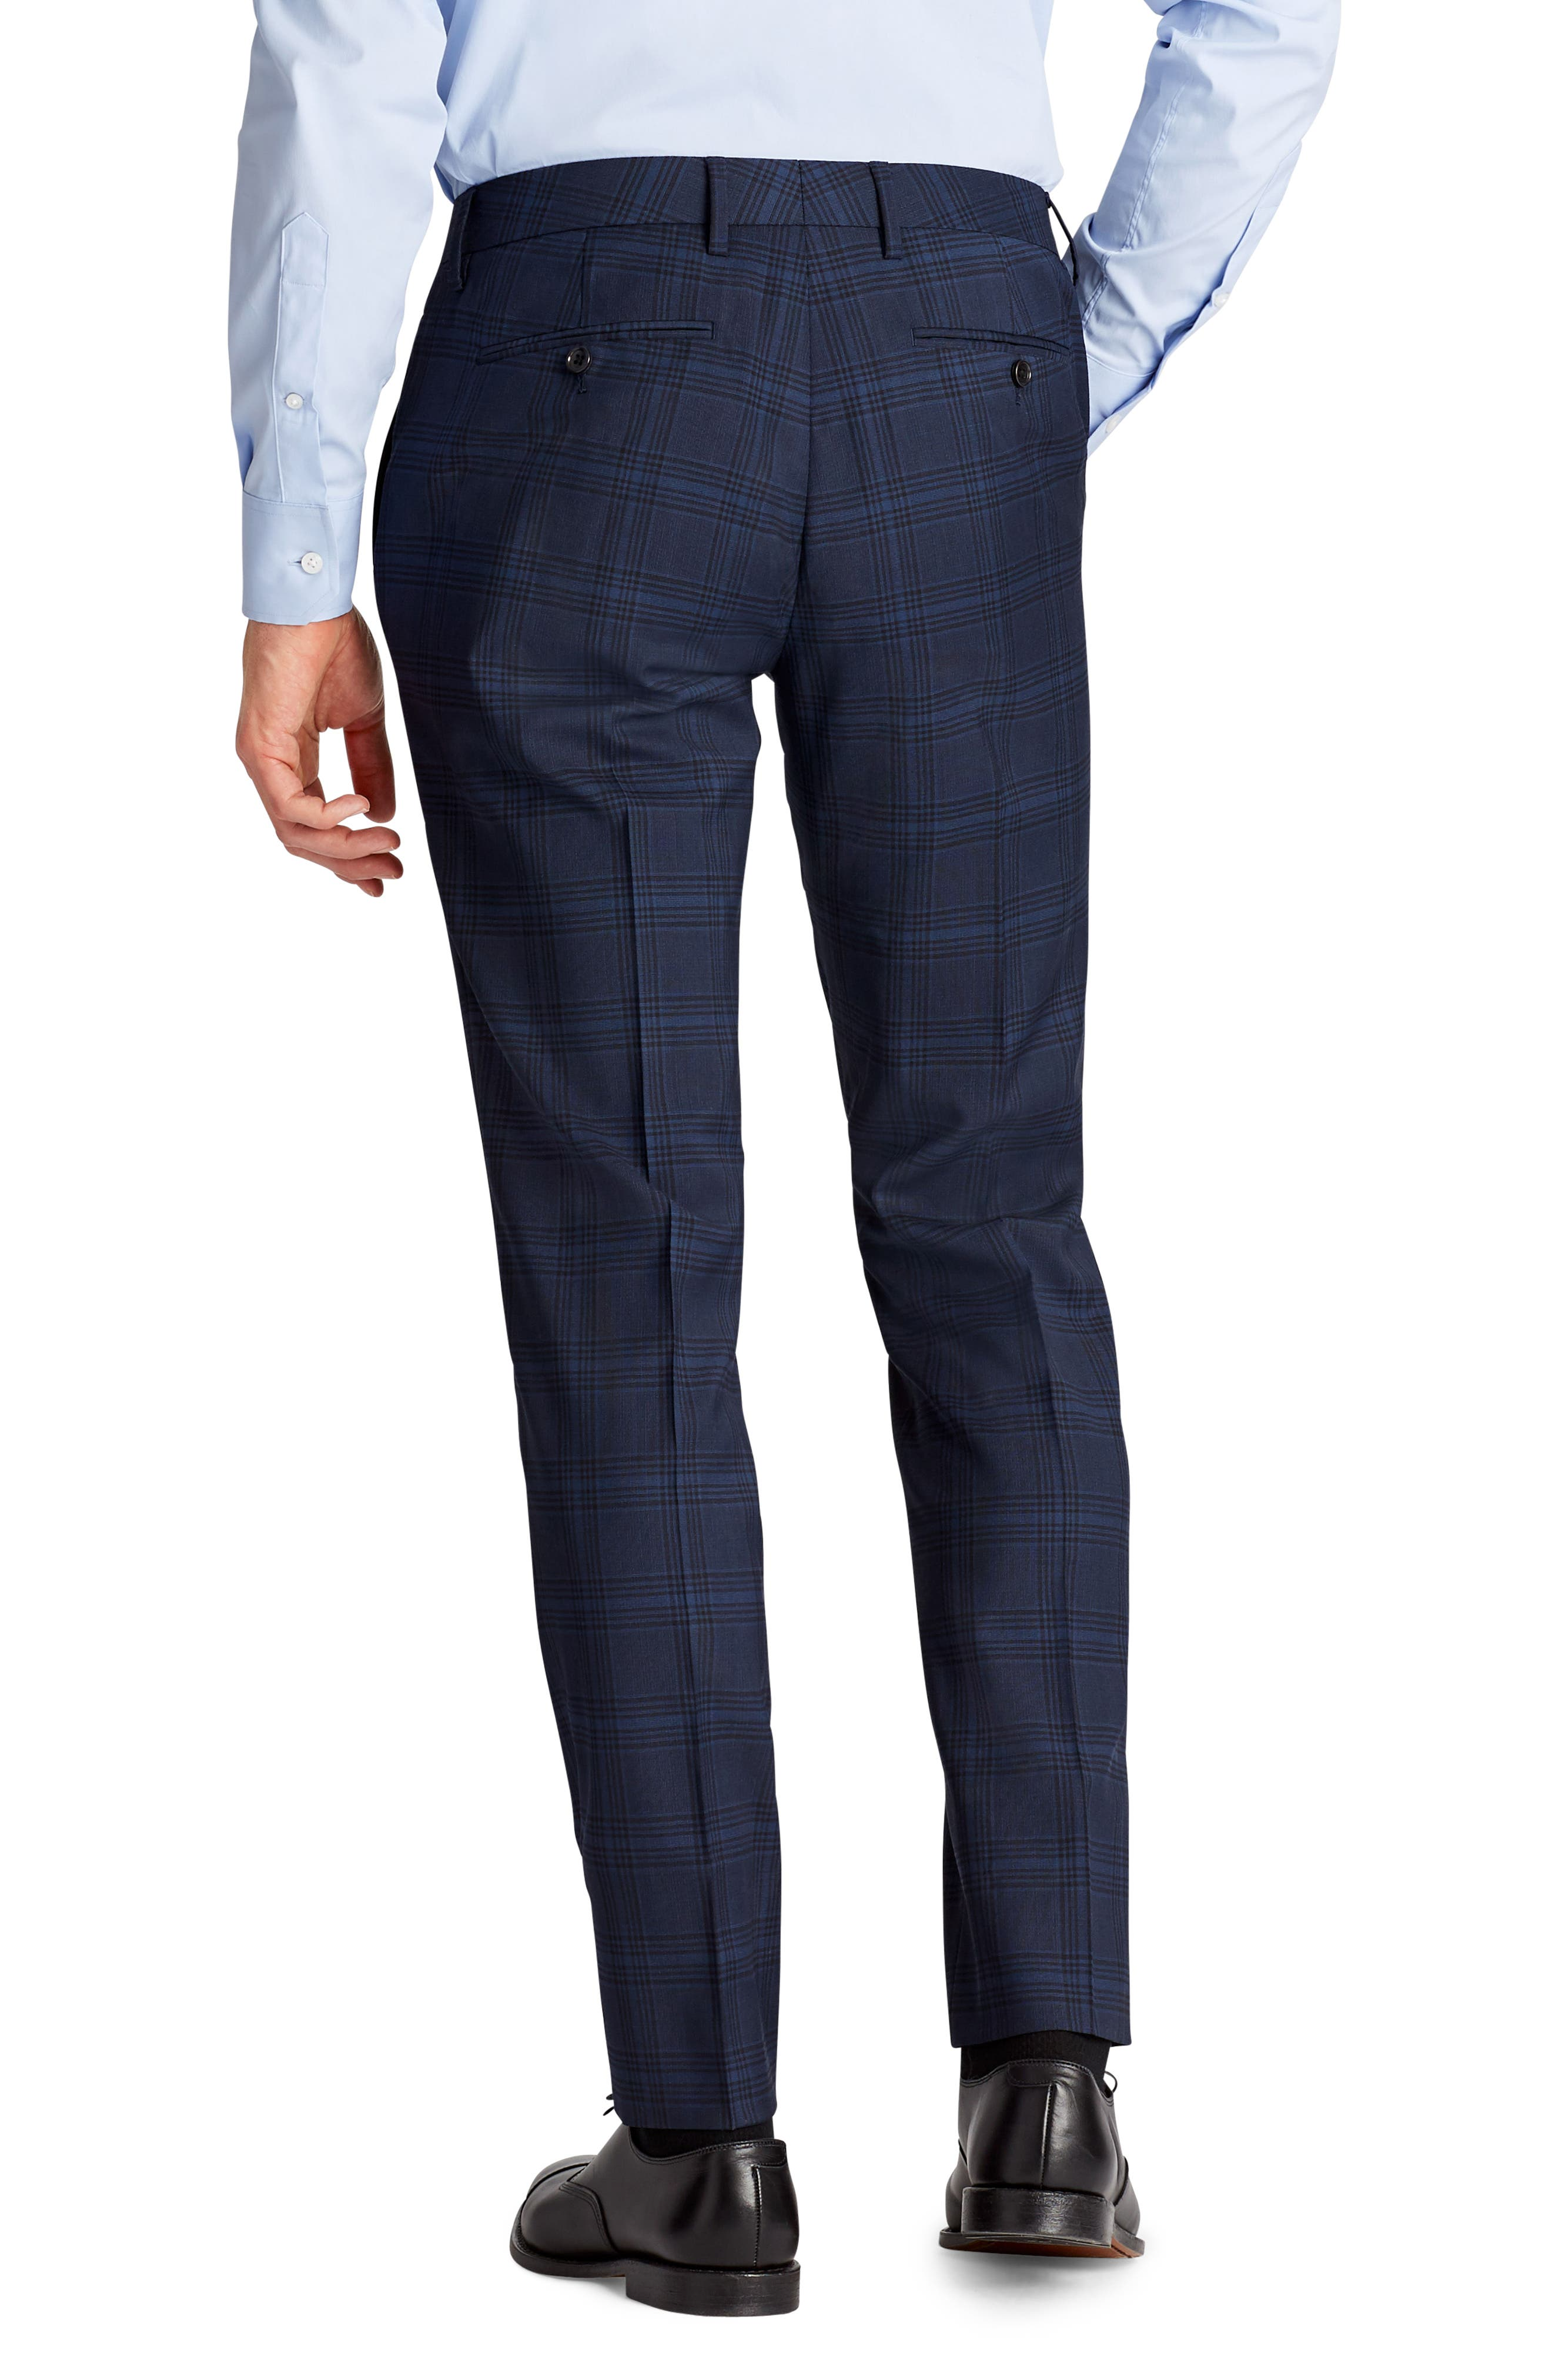 Jetsetter Flat Front Stretch Plaid Wool Blend Trousers,                             Alternate thumbnail 2, color,                             Navy Plaid